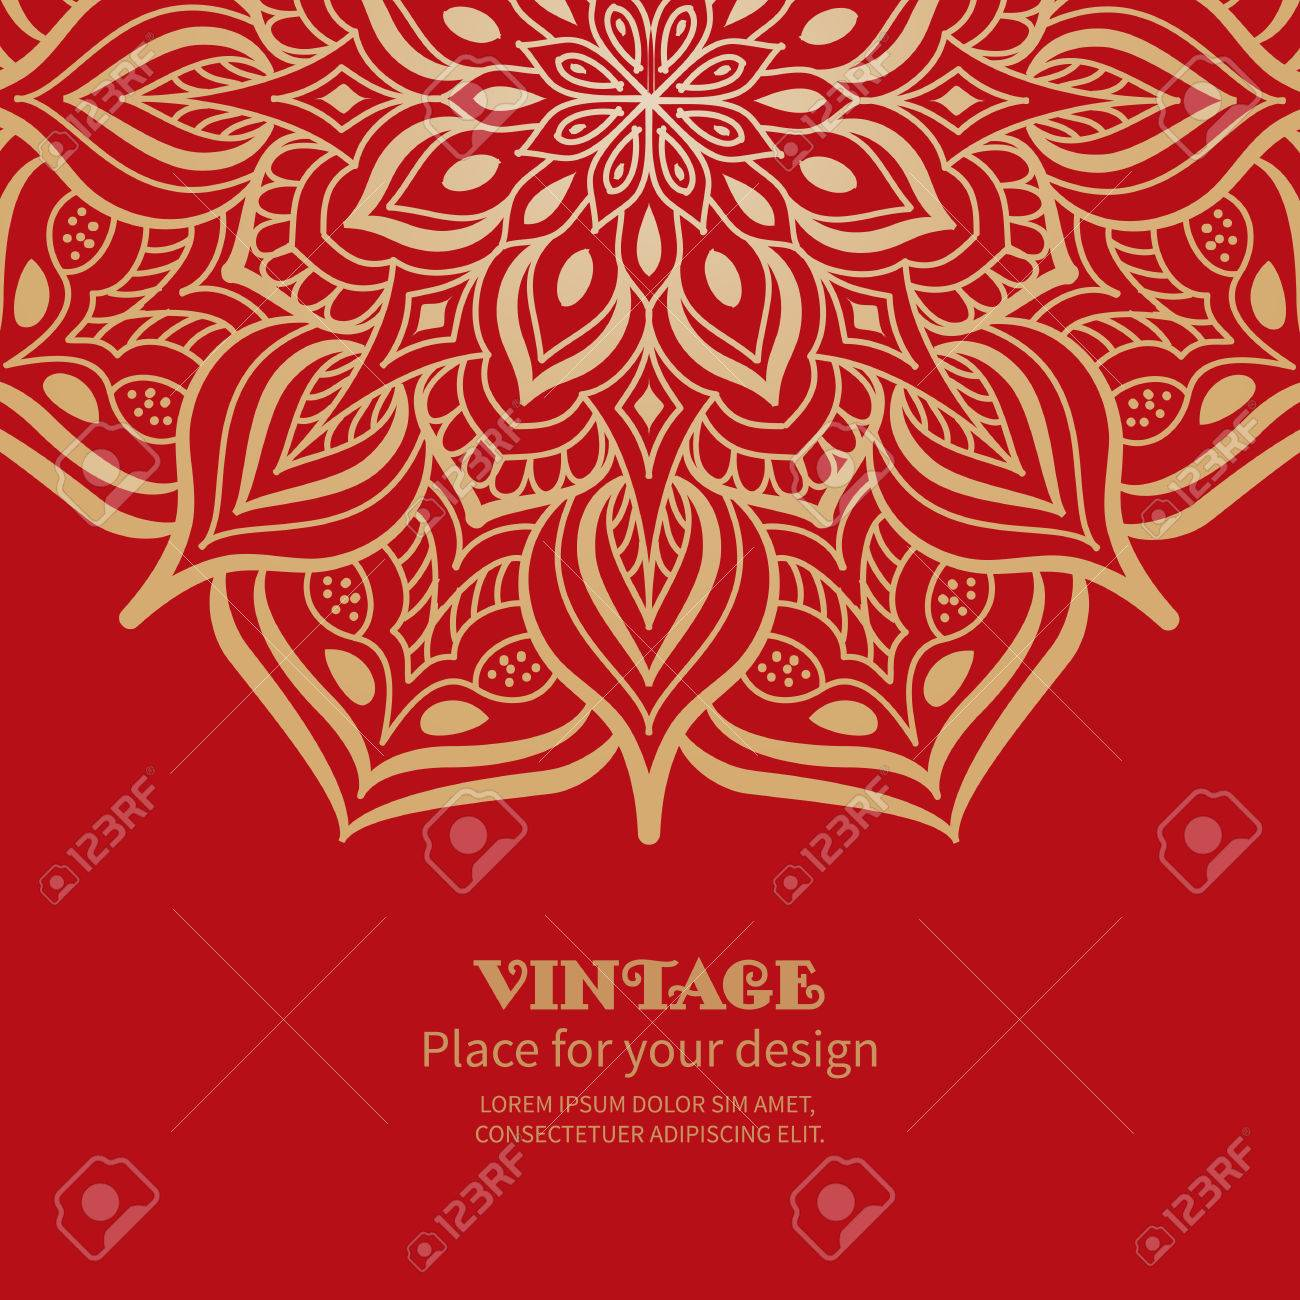 Wedding Invitation Or Greeting Card With Floral Ornament On Red ...